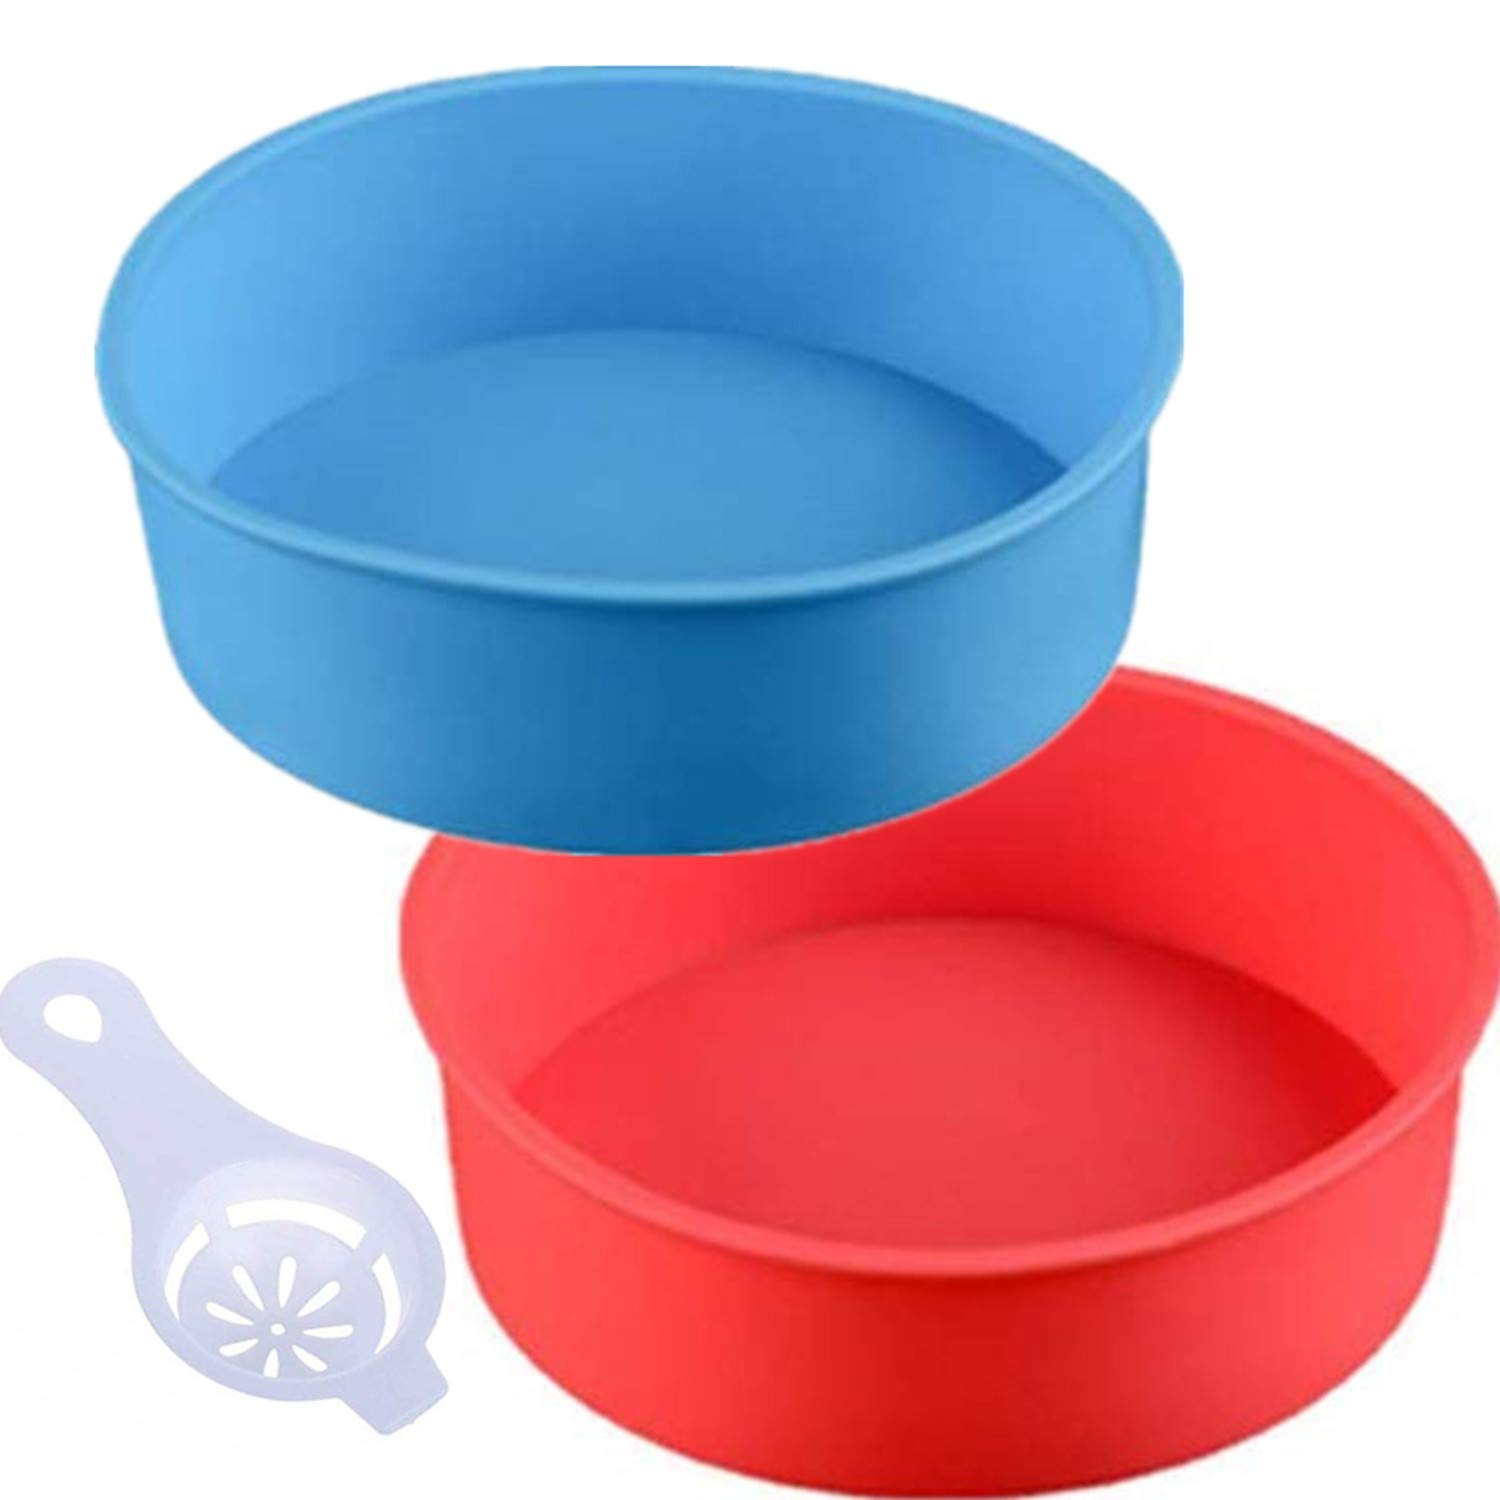 Round Silicone Cake Pan Baking Mold 6 Inches - Set of 2 - BPA-Free - Kitchen Baking Tool Red and Blue with Egg White Separator by zswell